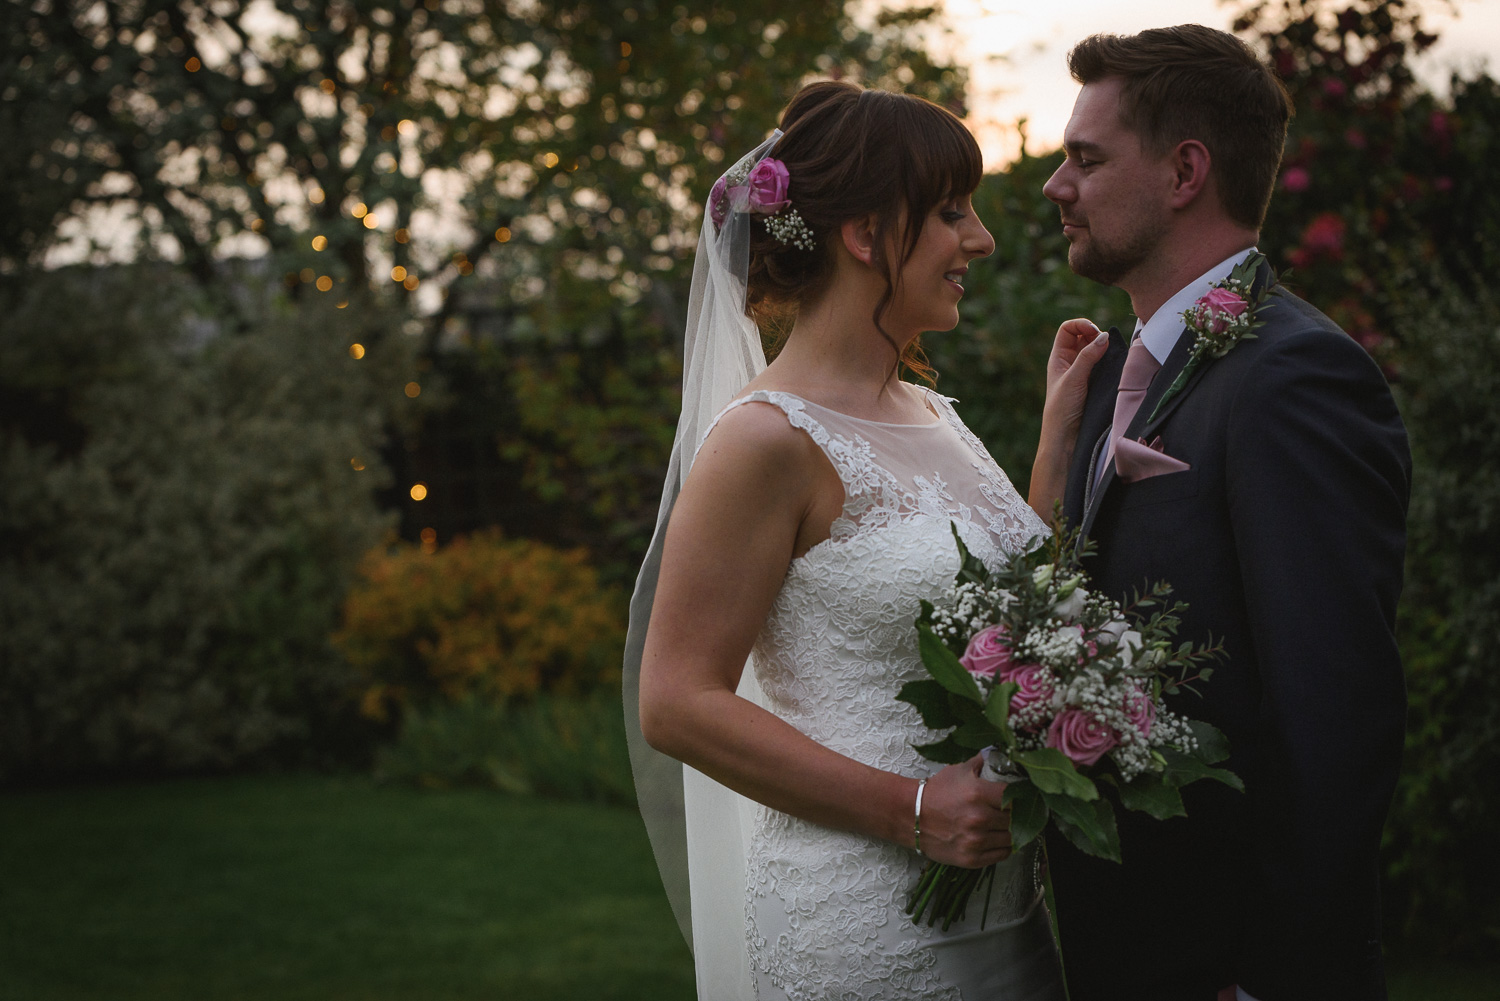 Lauren and Andrew - Curradine Barns, Worcestershire.